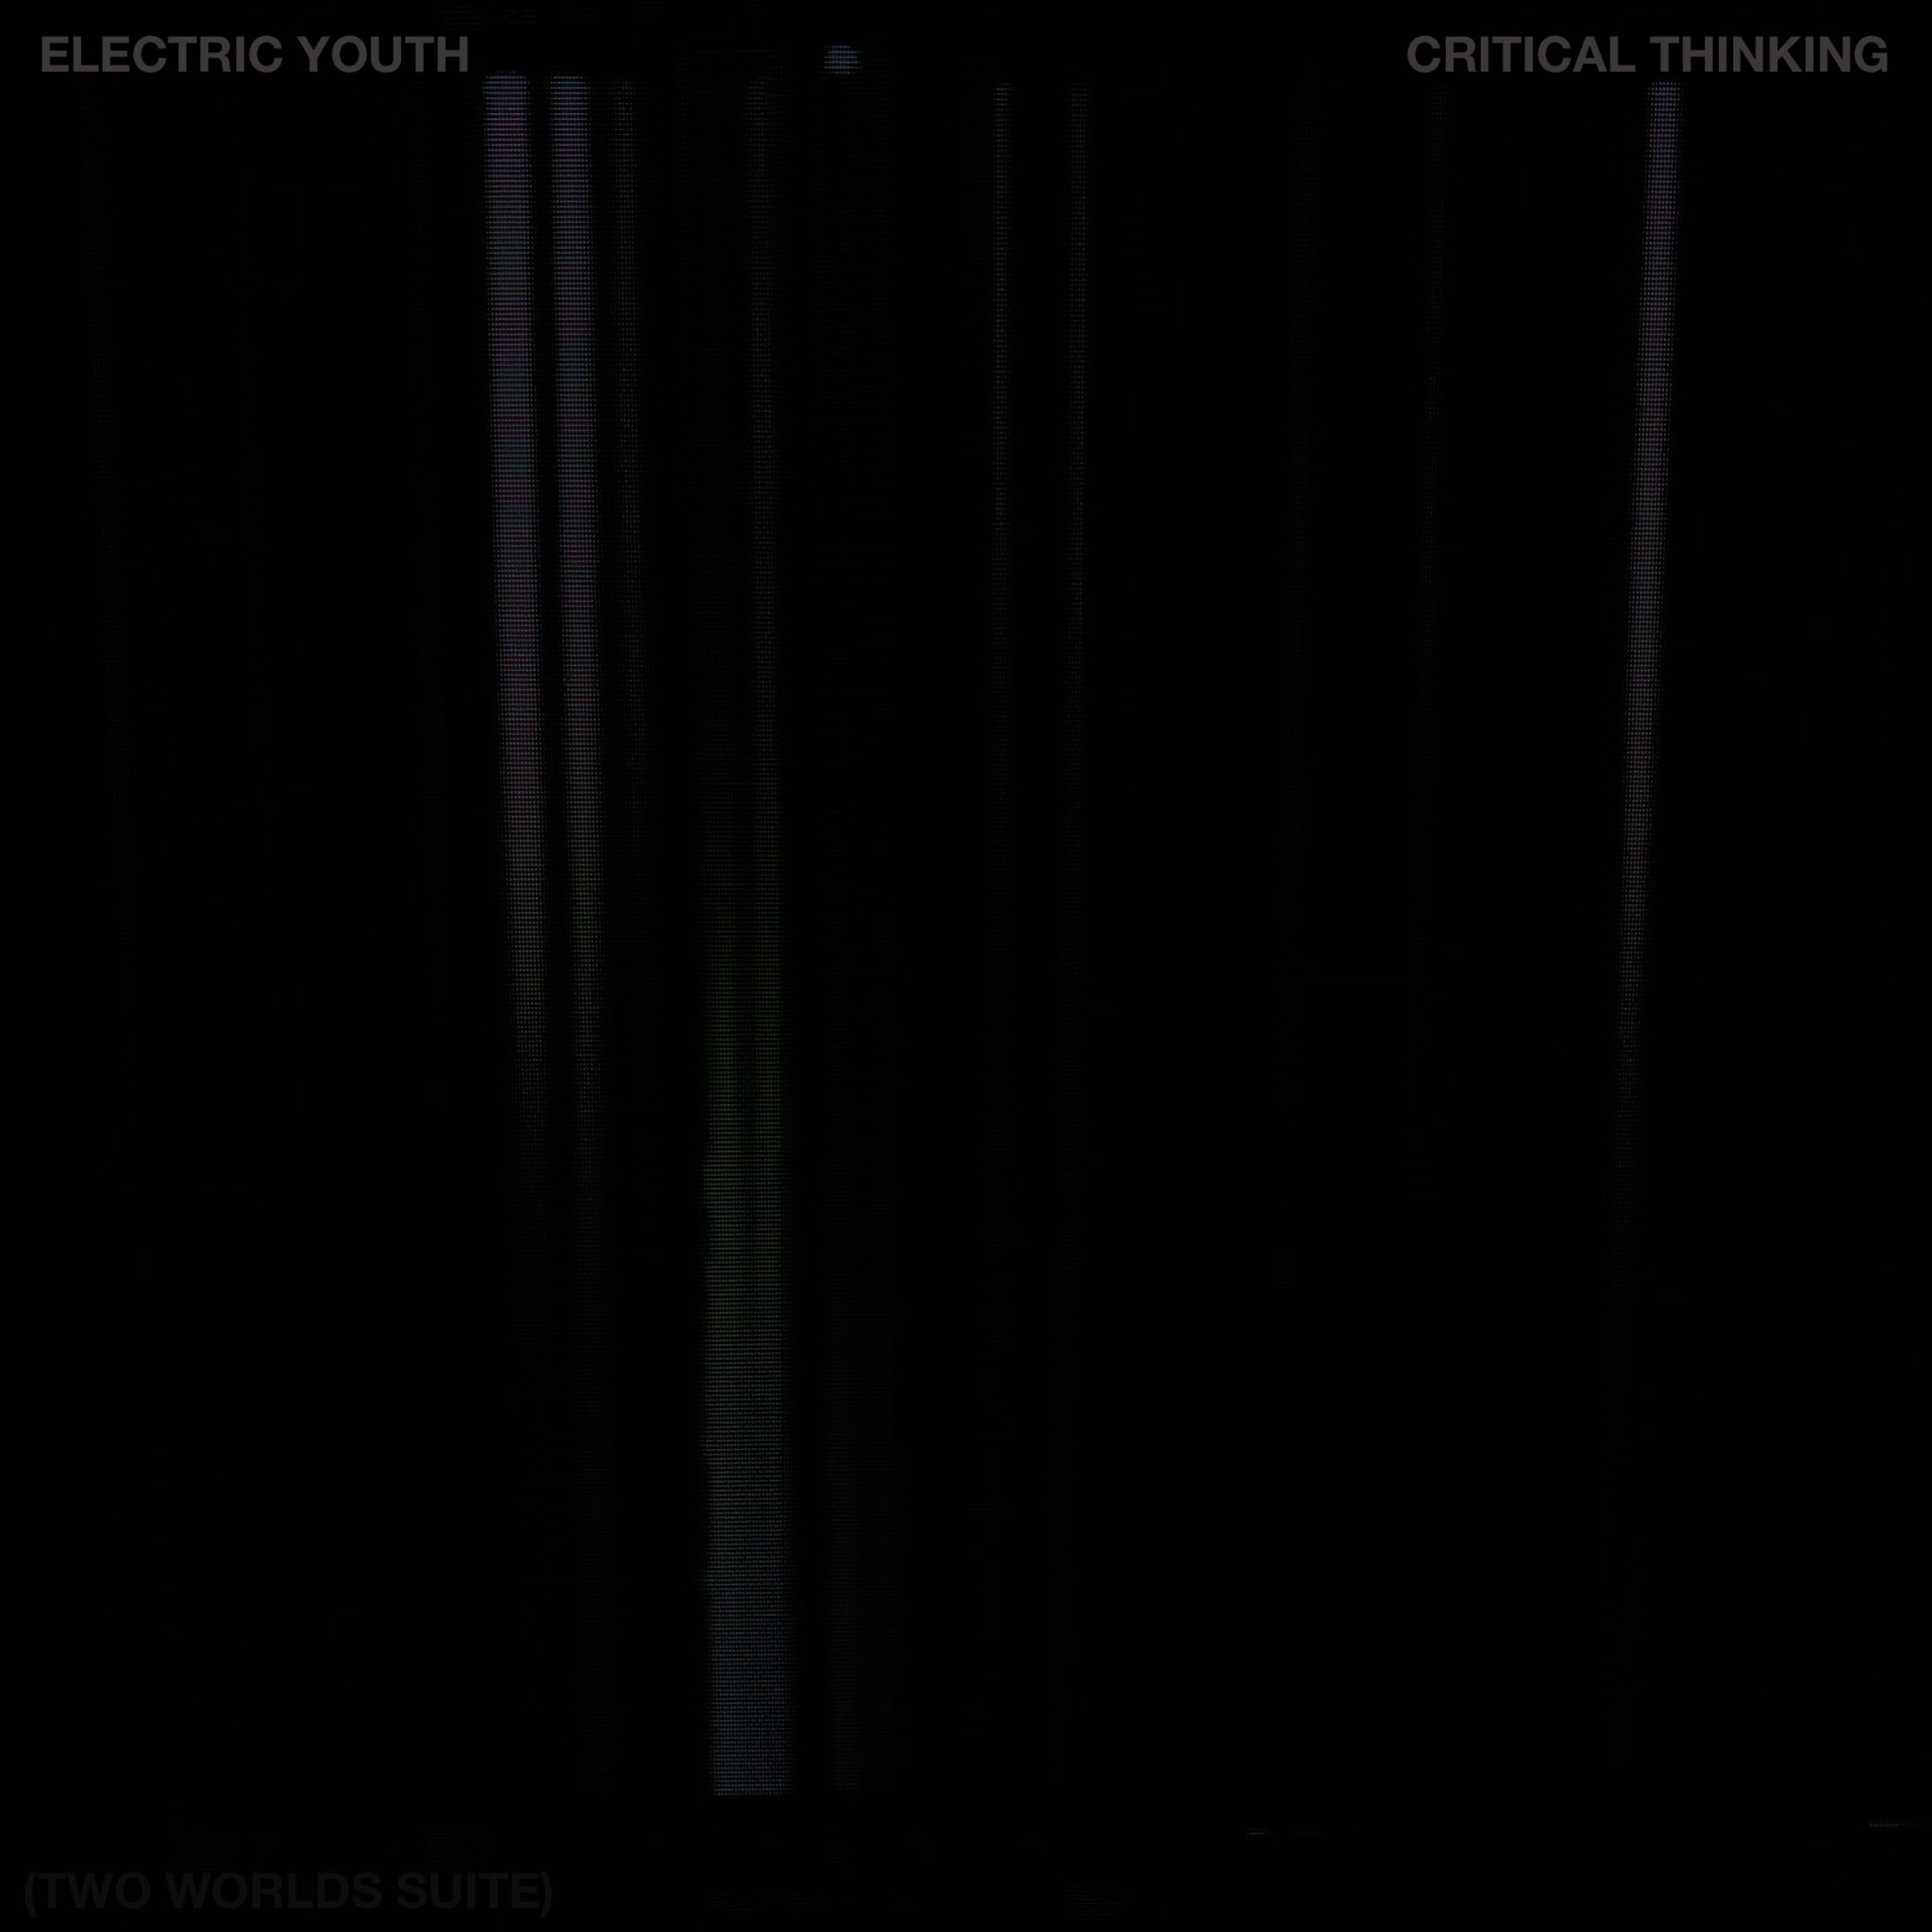 Okładka singla Critical Thinking (Two Worlds Suite) zespołu Electric Youth